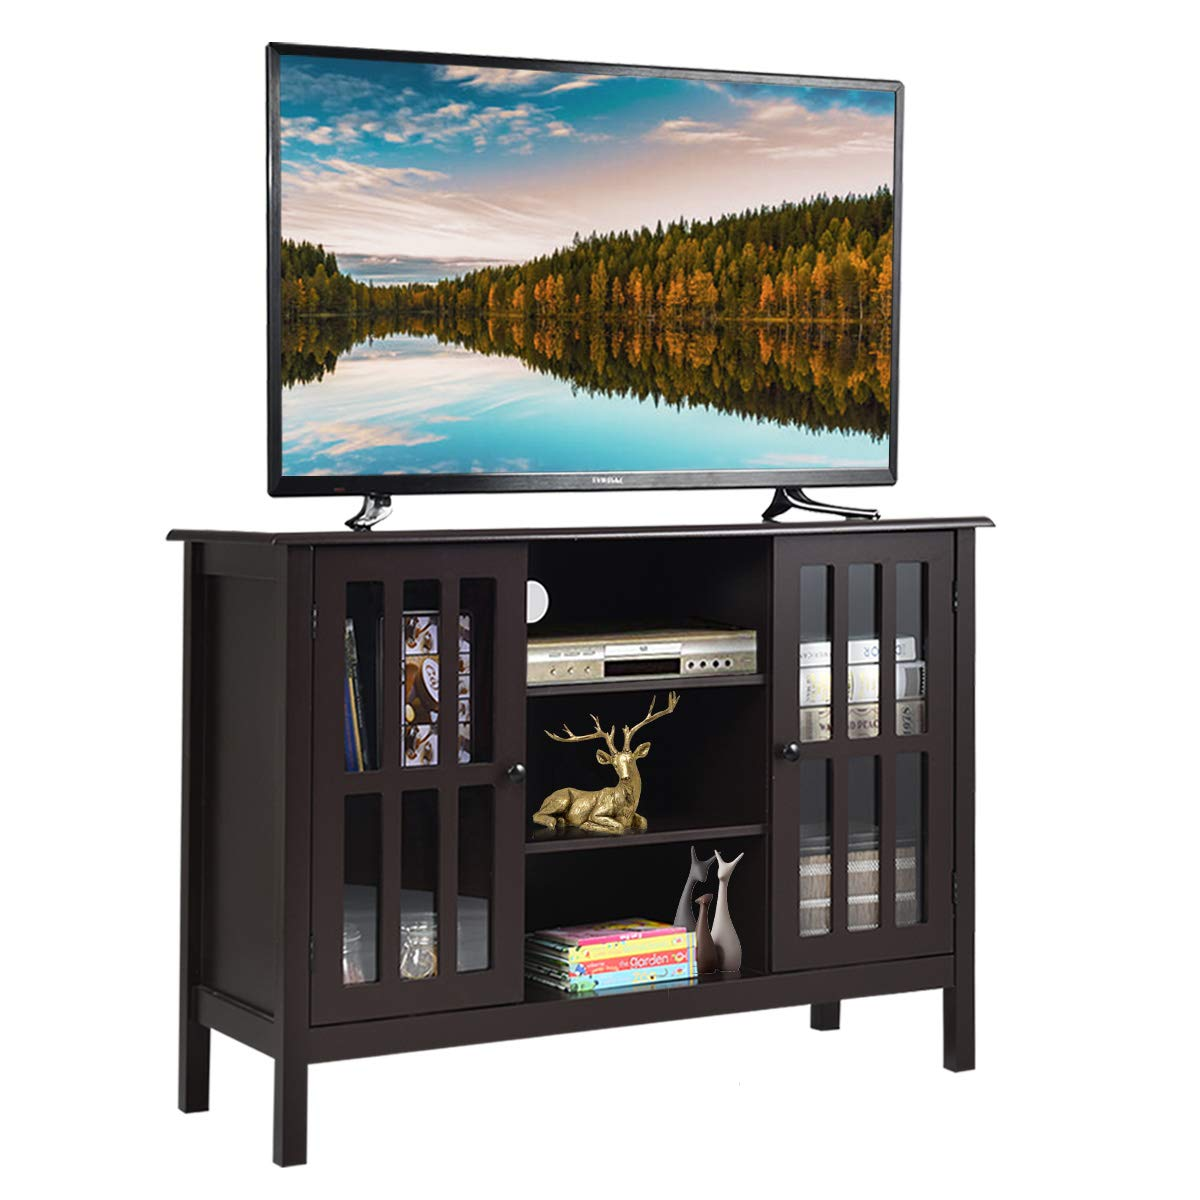 "Tangkula TV Stand, Classic Design Wood Storage Console Free Standing Cabinet for TV up to 45"", Media Entertainment Center Home Living Room Furniture, TV Stand Cabinet (Brown)"